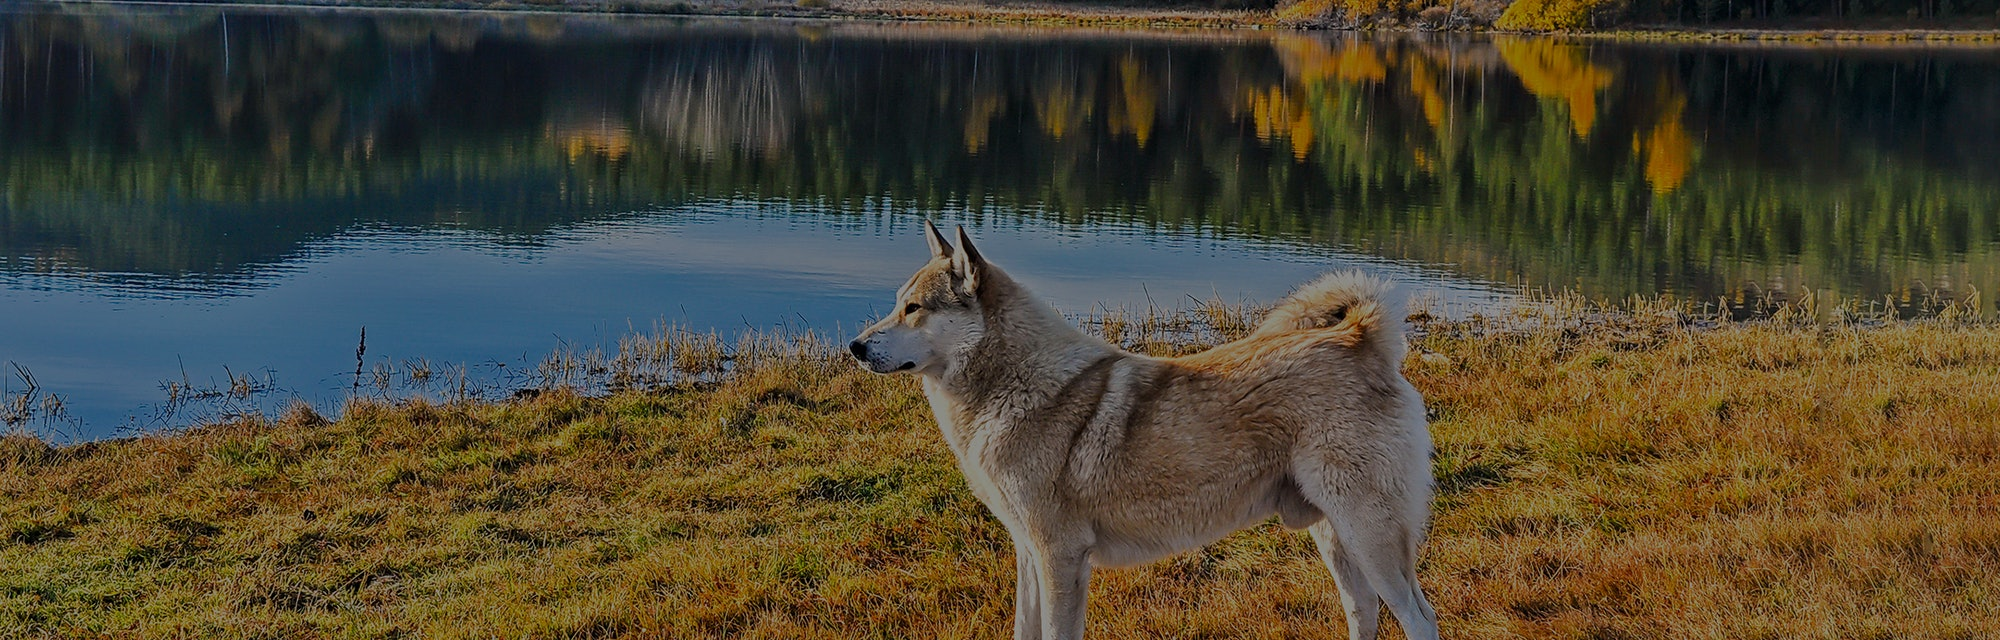 Dog at mountain forest lake. Dog on lake shore. Dog in nature. Autumn lake dog portrait